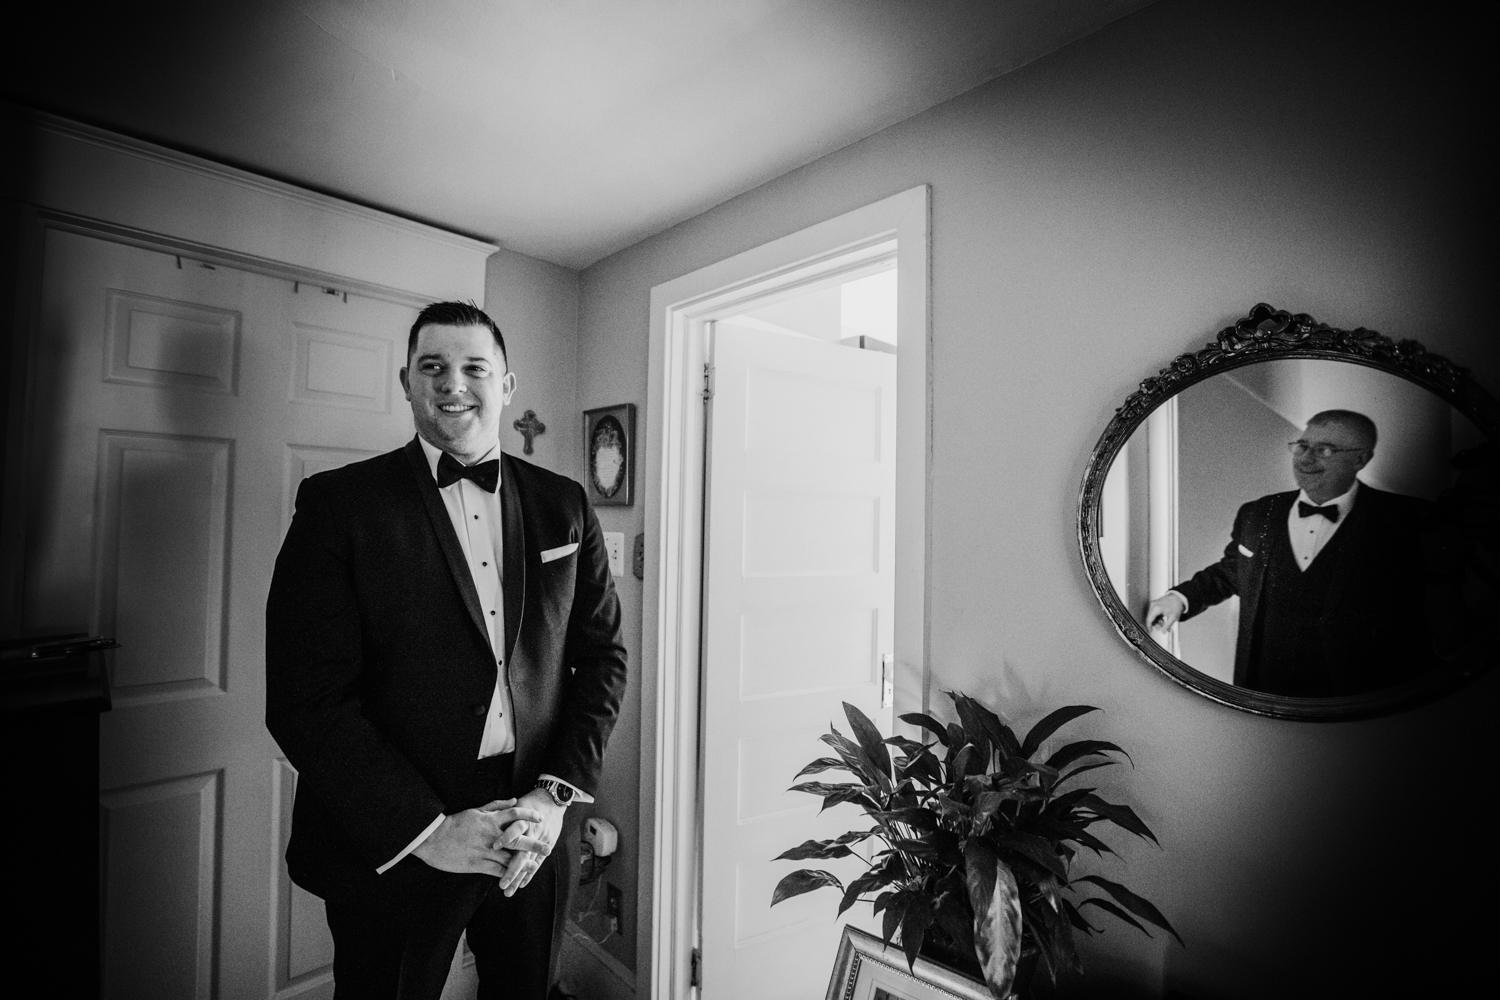 The-Mansion-NJ-Wedding-Jenna-Lynn-Photography-BriannaJimmy-GettingReadyBW-5.jpg